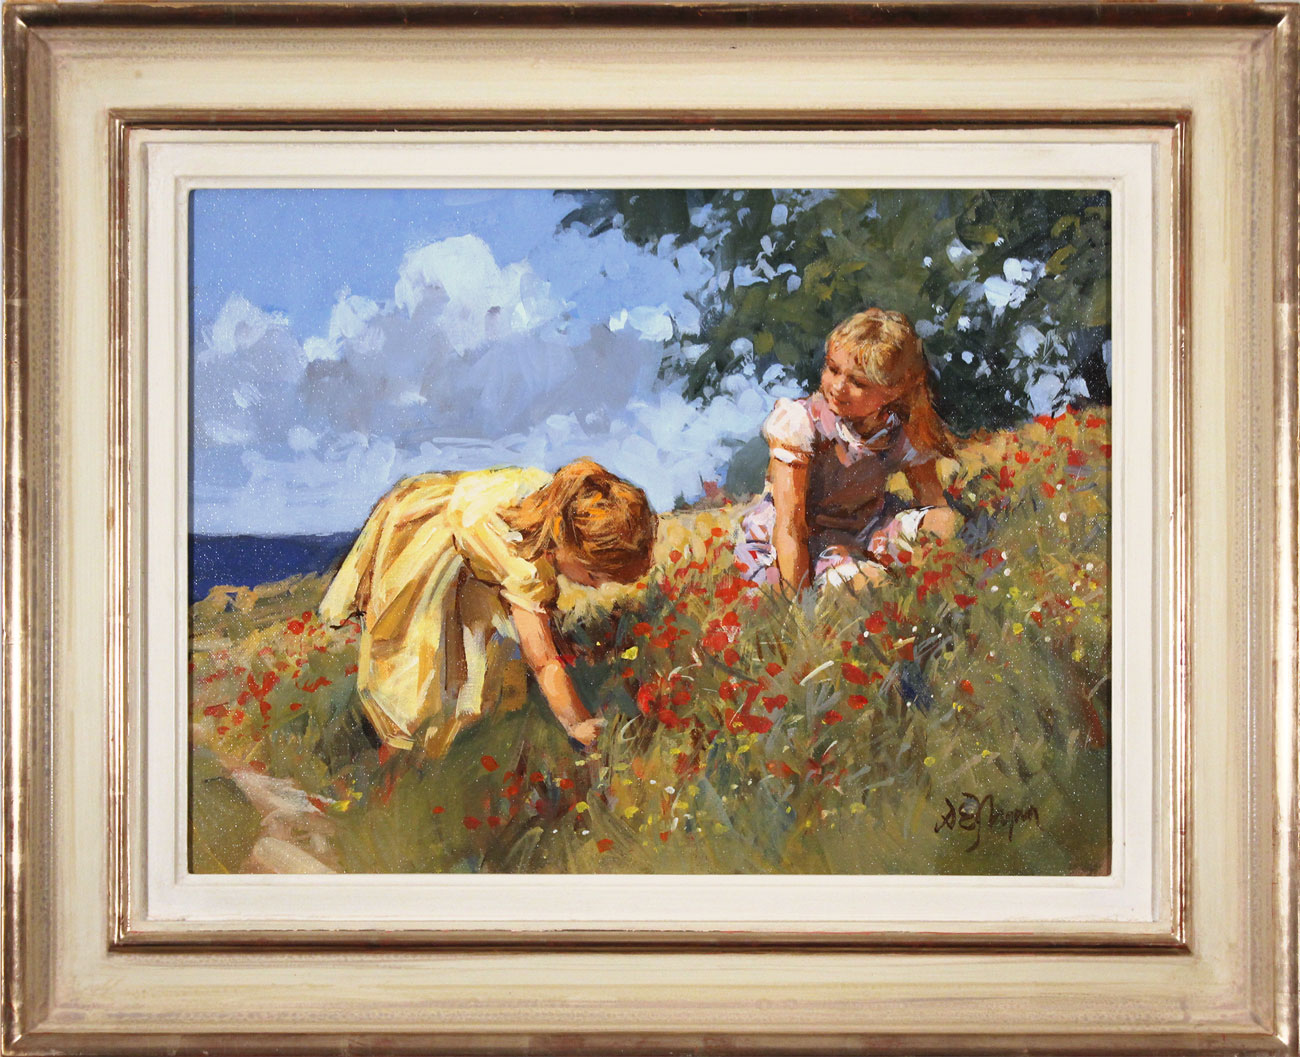 Dianne Flynn, Original acrylic painting on canvas, Maids in a Meadow Click to enlarge